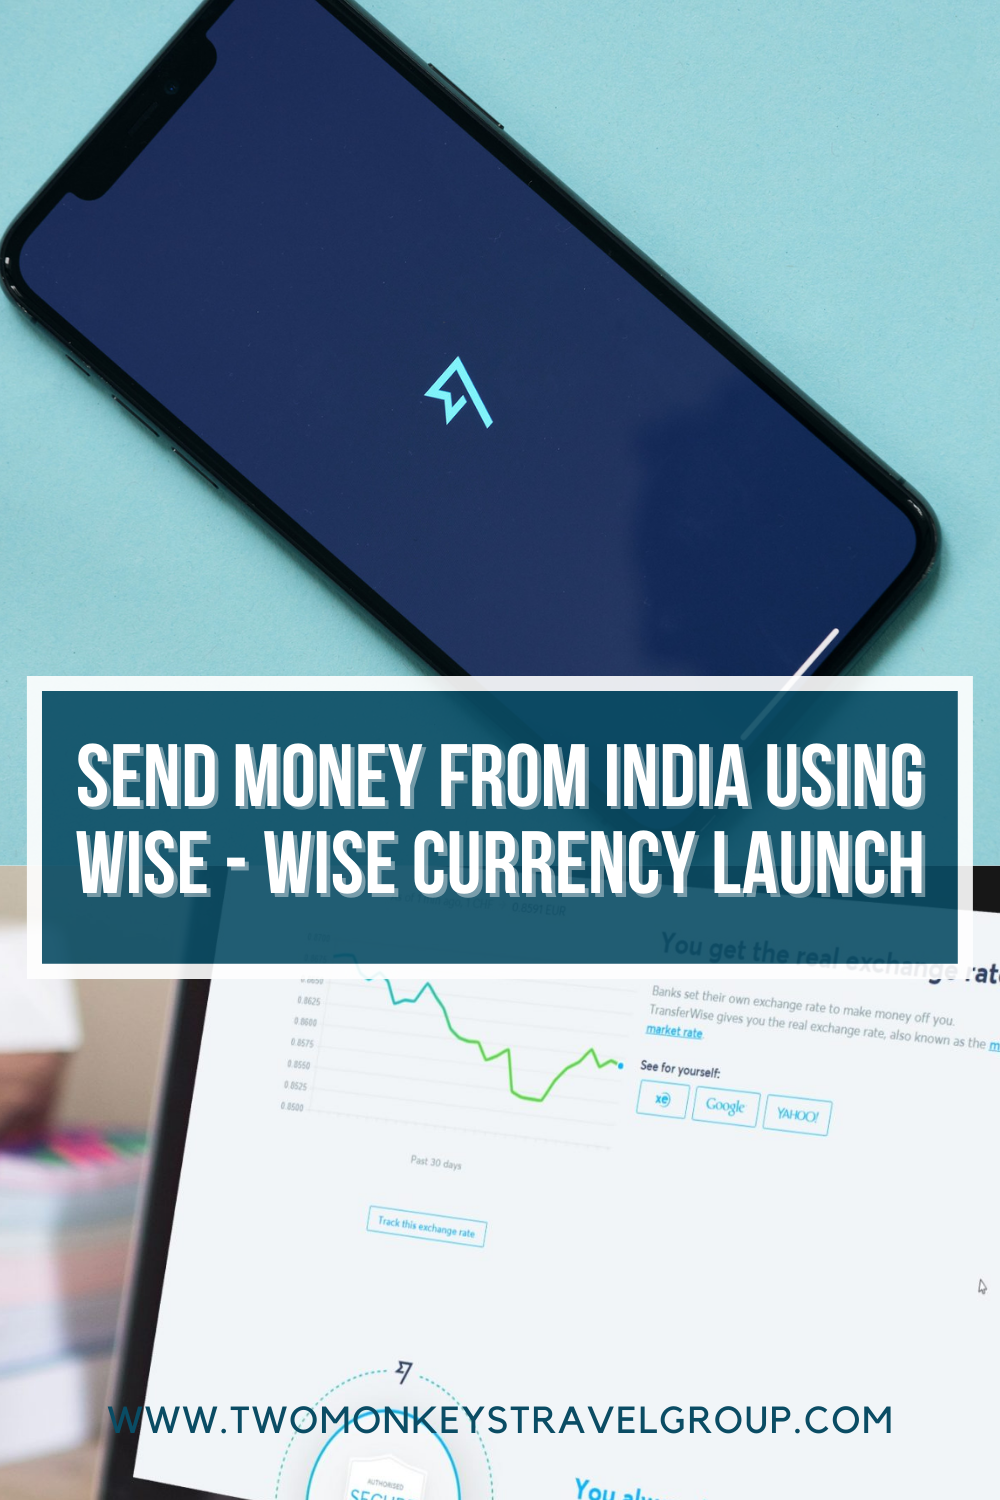 Send Money From India Using Wise Wise Currency Launch